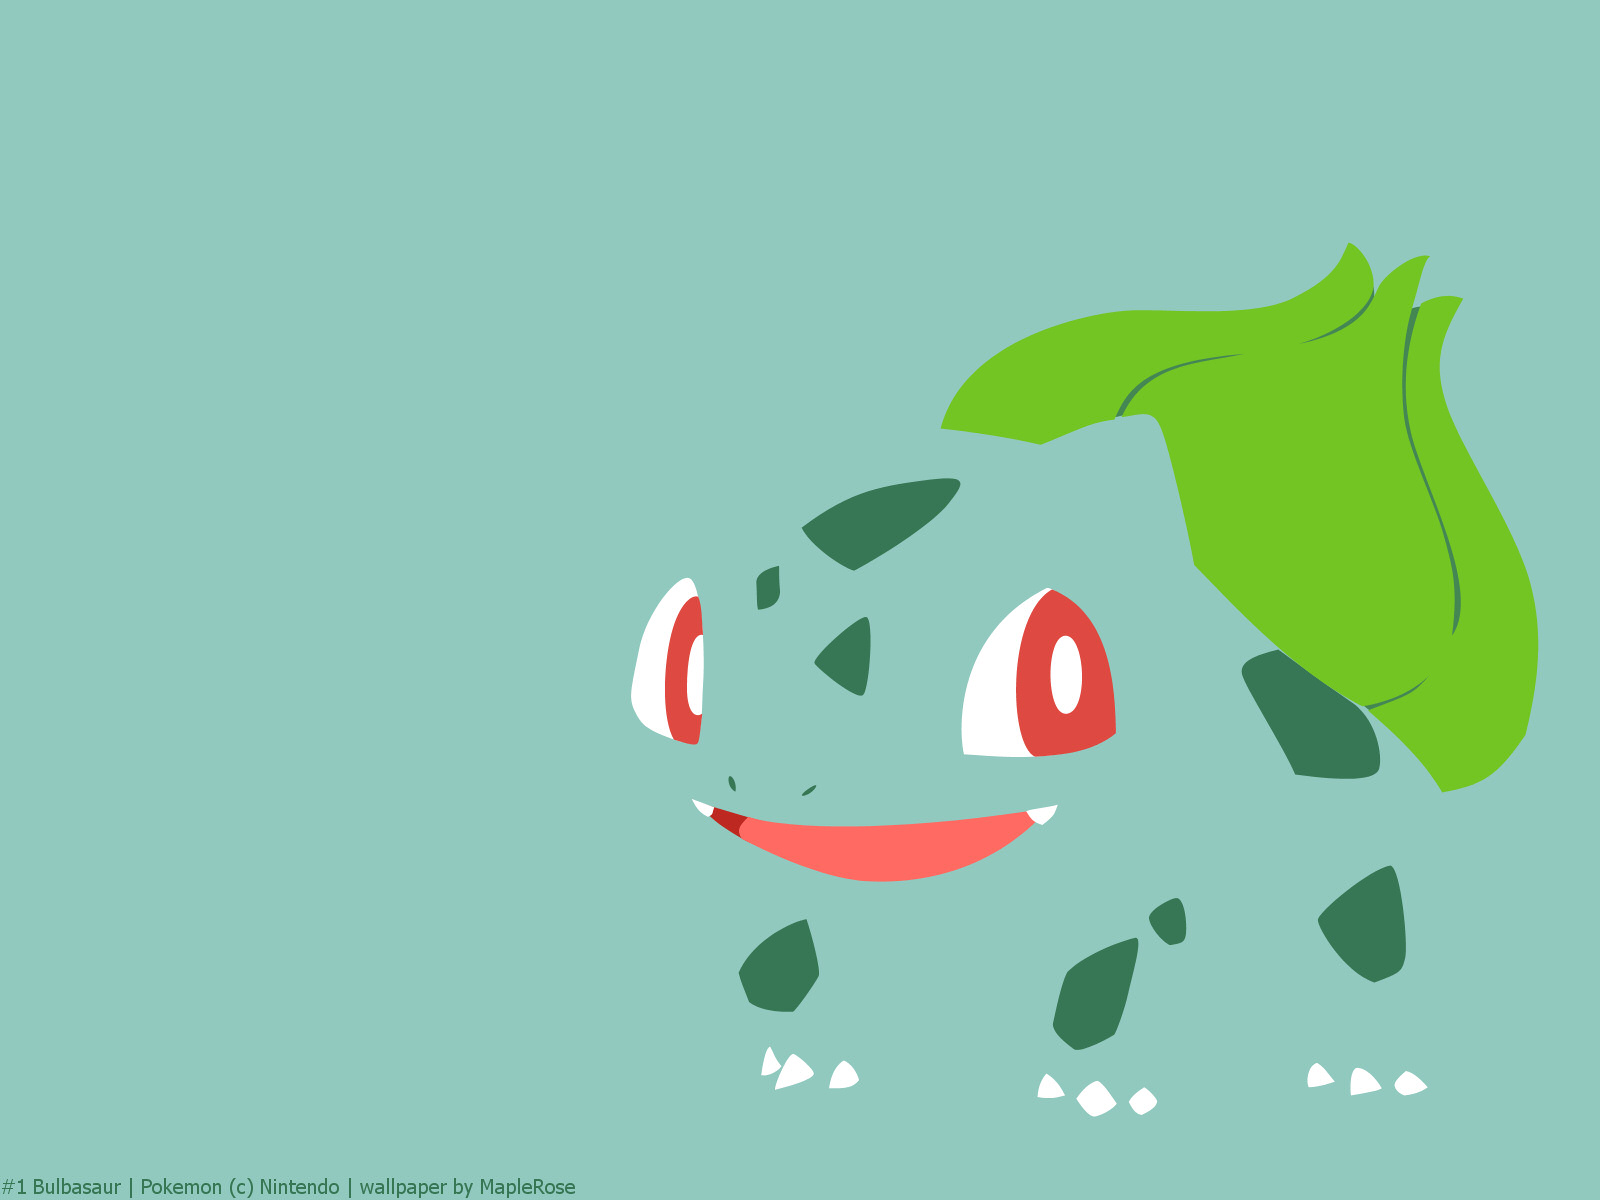 bulbasaur evolution wallpaper images - photo #26